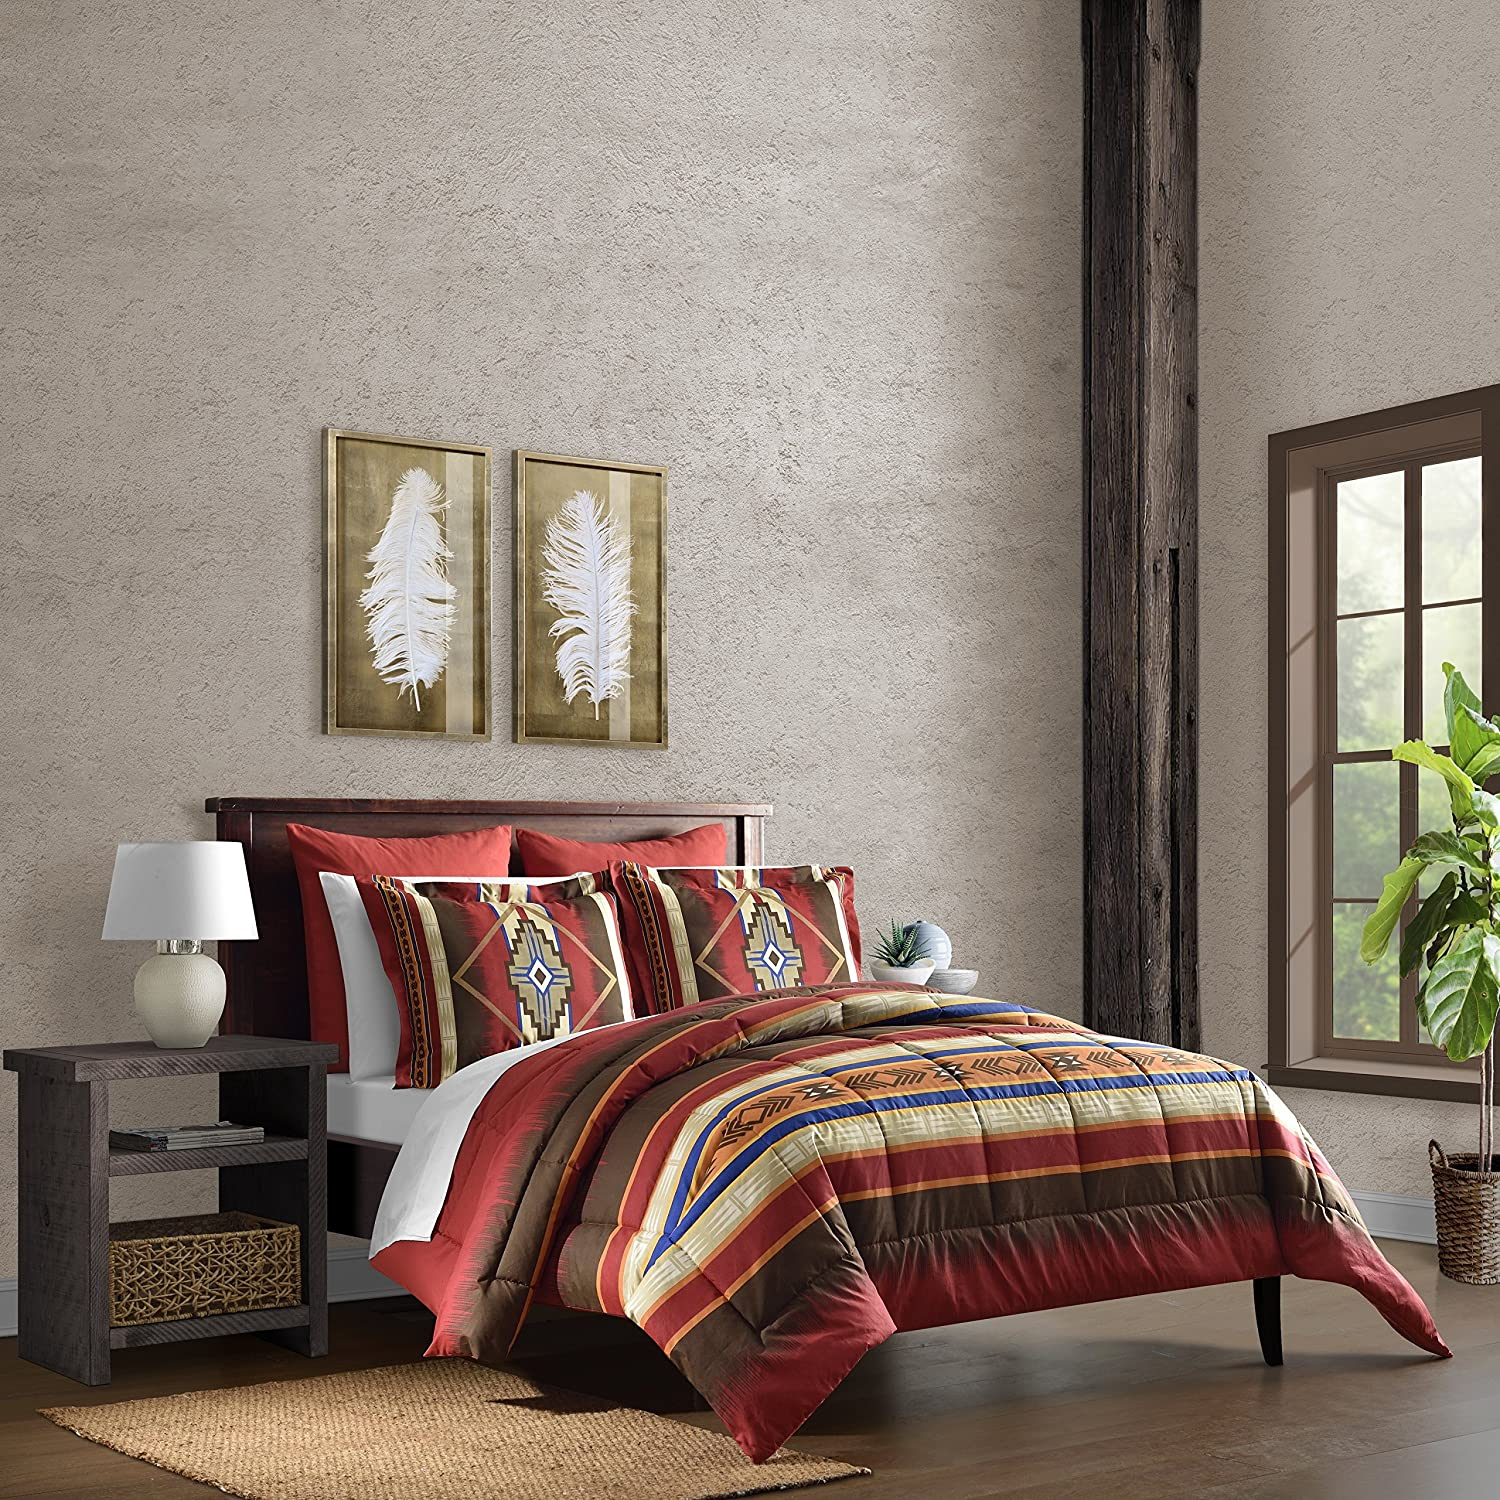 lustwithalaugh choose quilts nice ideas comforters to southwest design comforter southwestern